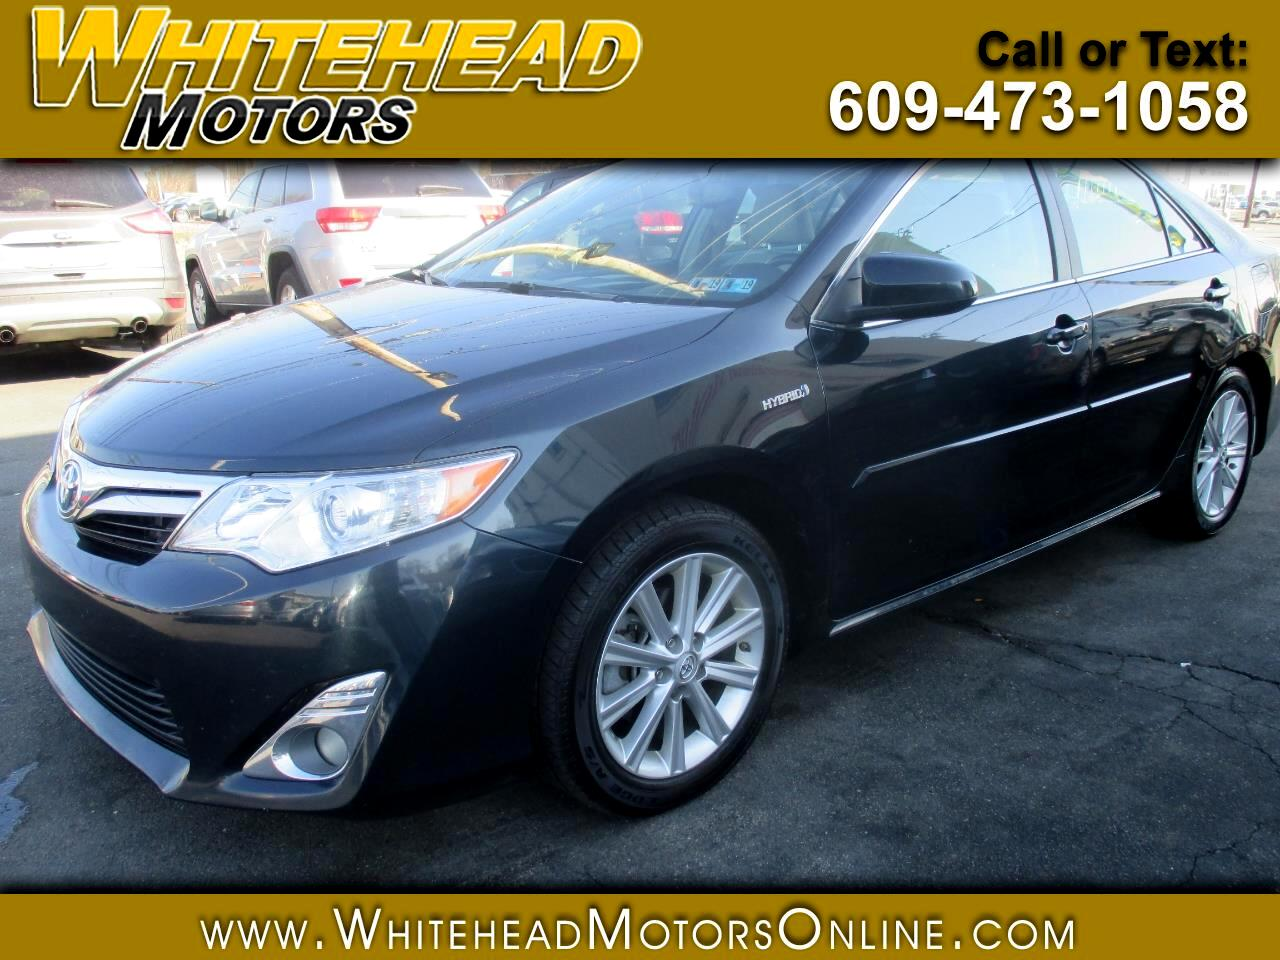 2014 Toyota Camry Hybrid 4dr Sdn LE (Natl) *Ltd Avail*